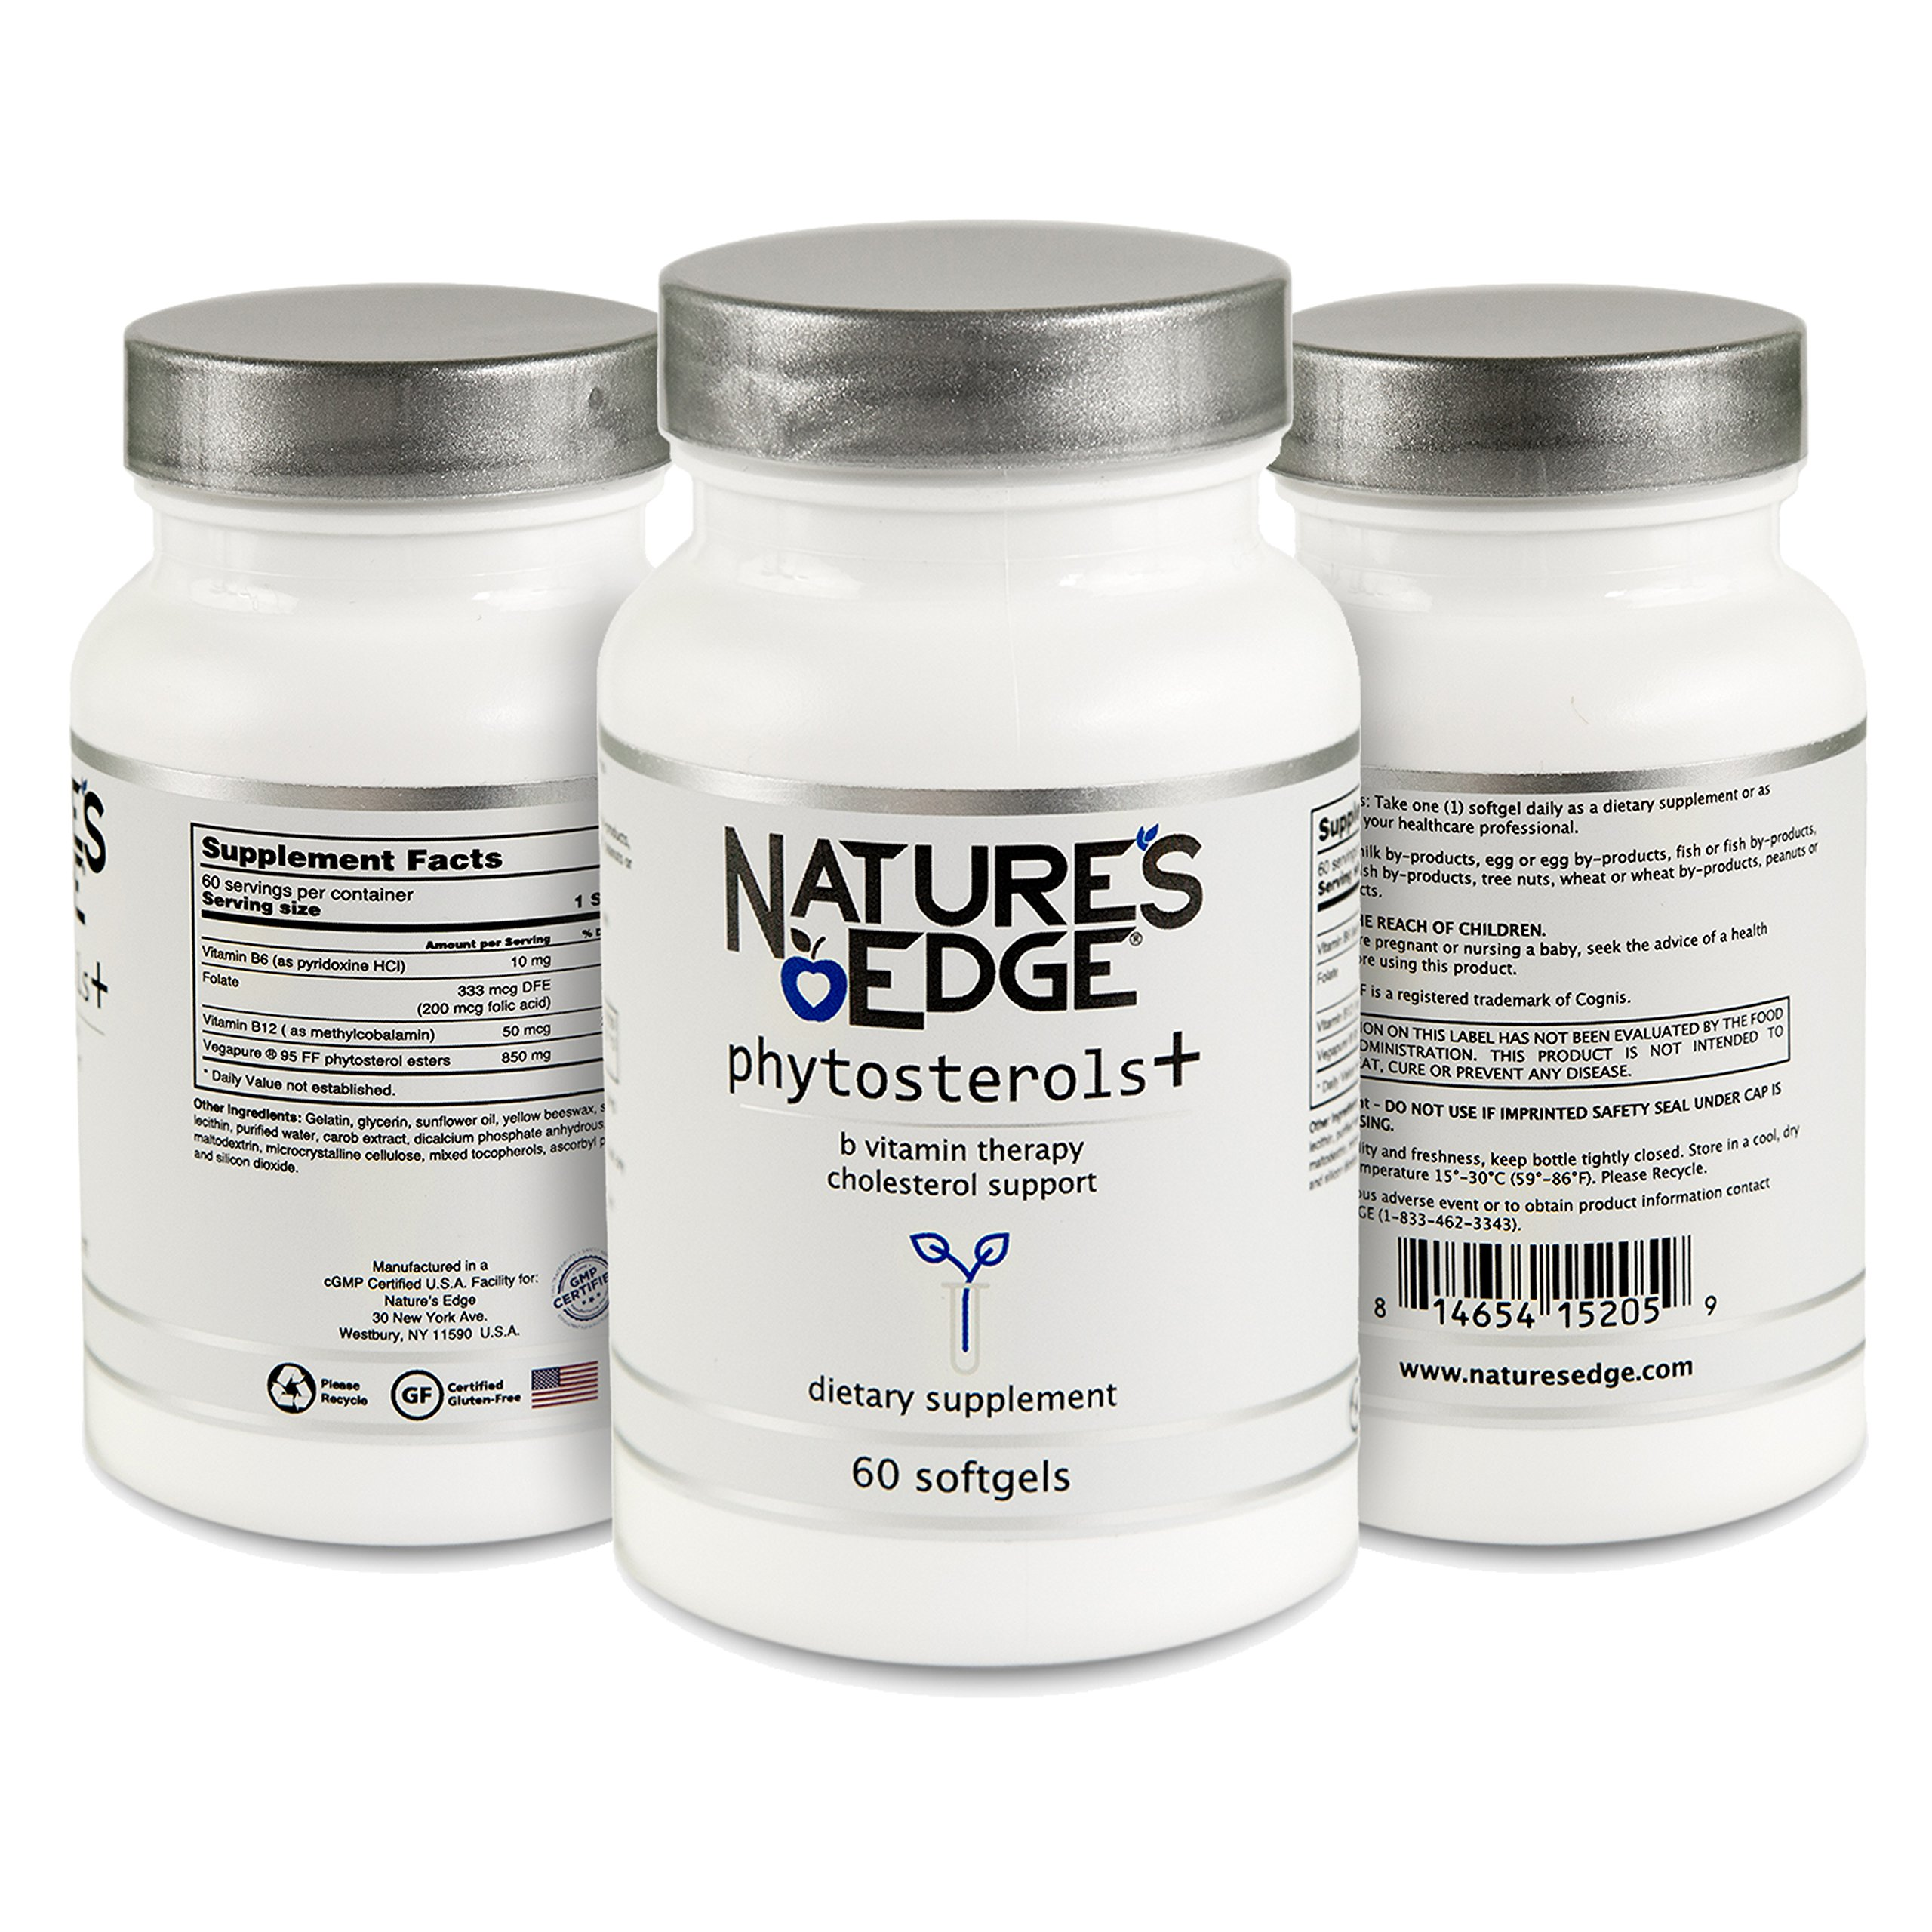 Natural Phytosterol Plus B Dietary Supplement by Nature's Edge® | Cholesterol Lowering Support with Vitamins B6 & B12 | Promote Cardiovascular Health & Reduce Blood Cholesterol Levels | 60 Softgels by Nature's Edge